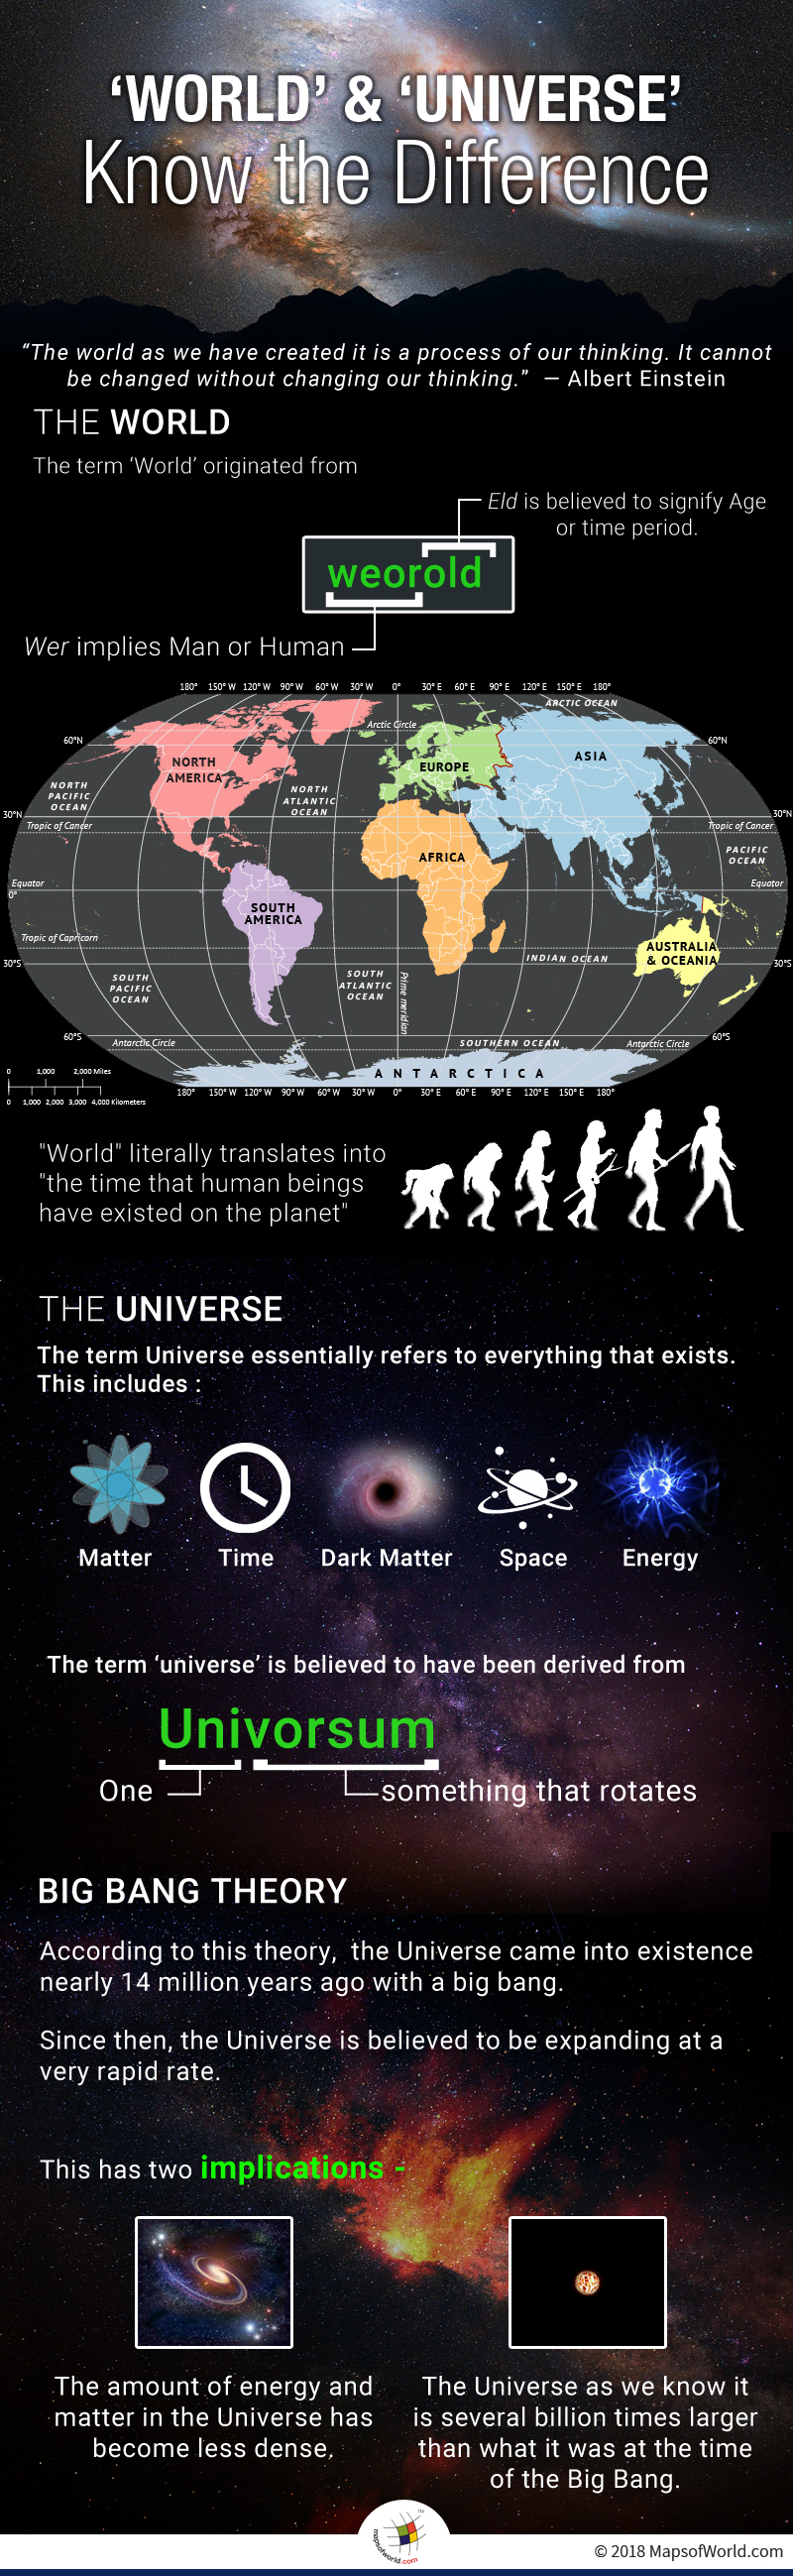 Infographic elaborating difference between 'World' and 'Universe'